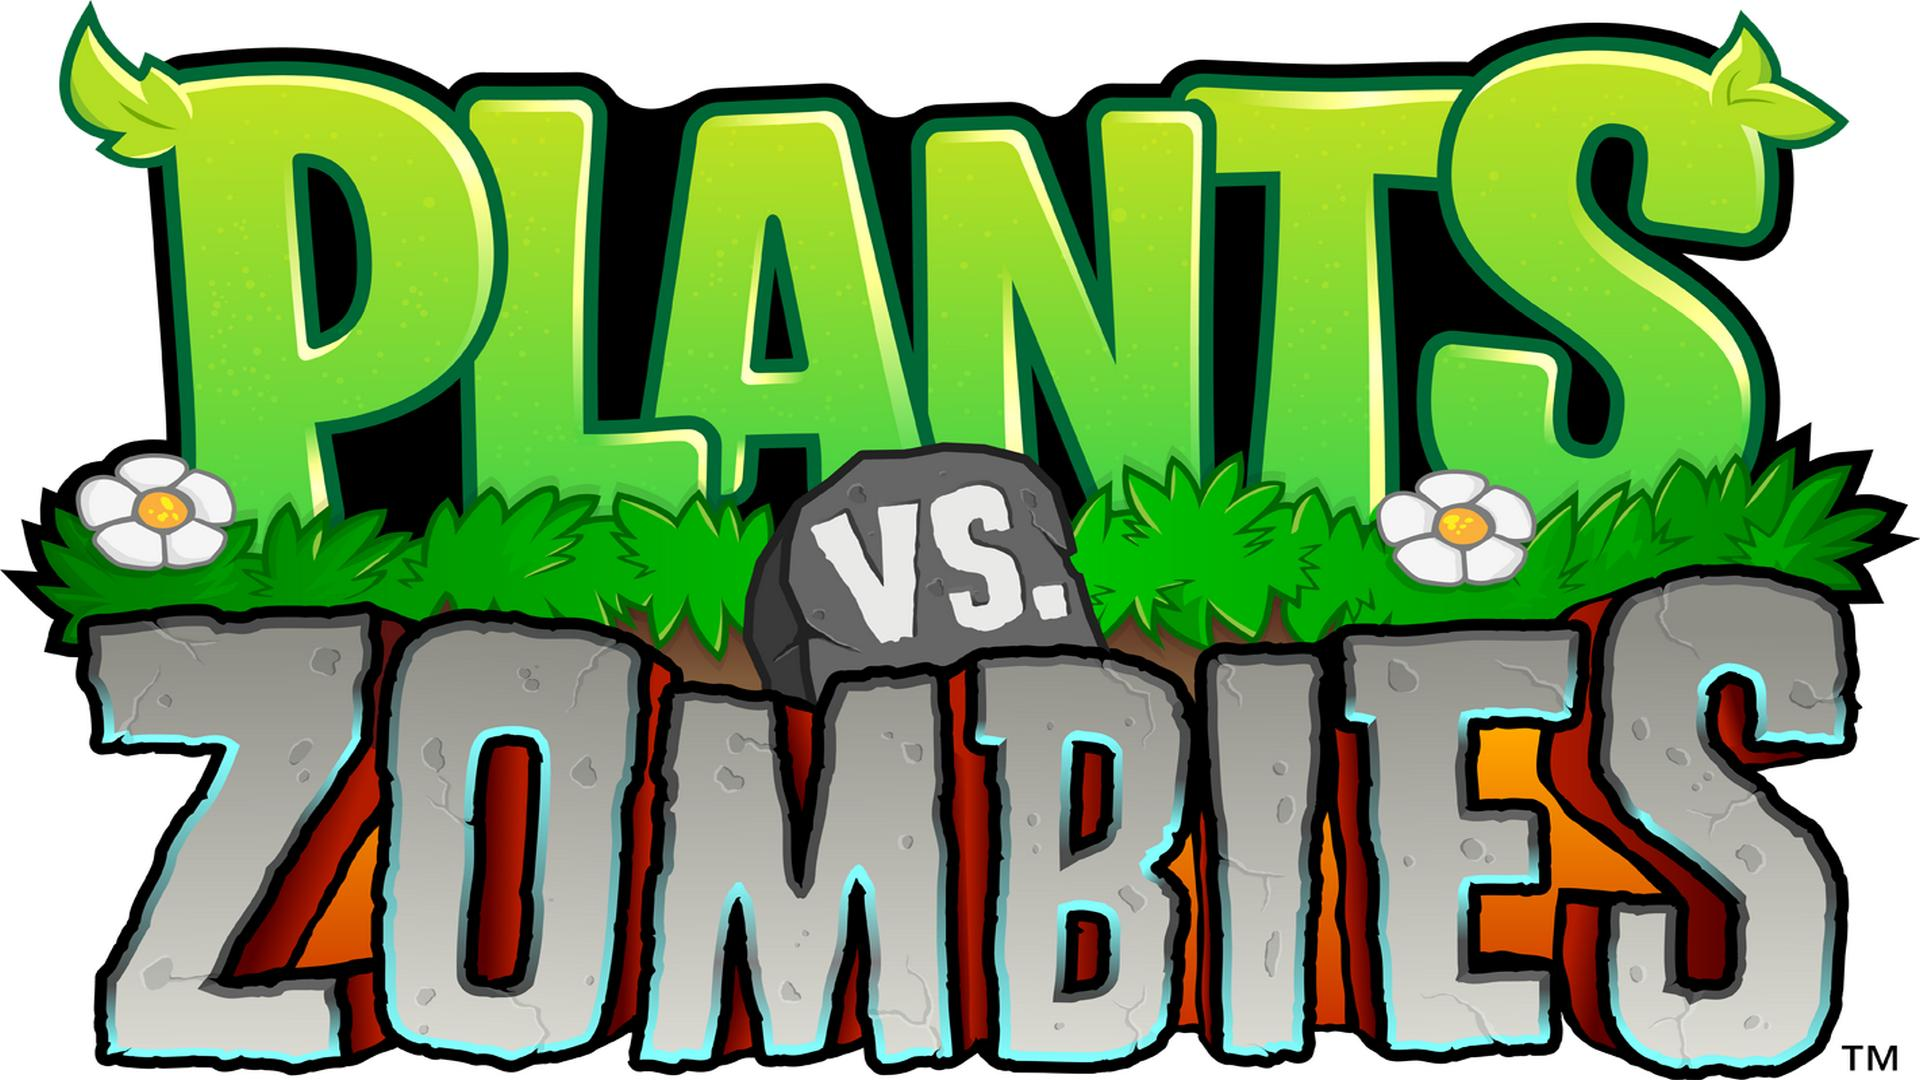 Plants vs zombies wallpapers wallpaper cave plants vs zombie hallowen wallpaper download toneelgroepblik Image collections